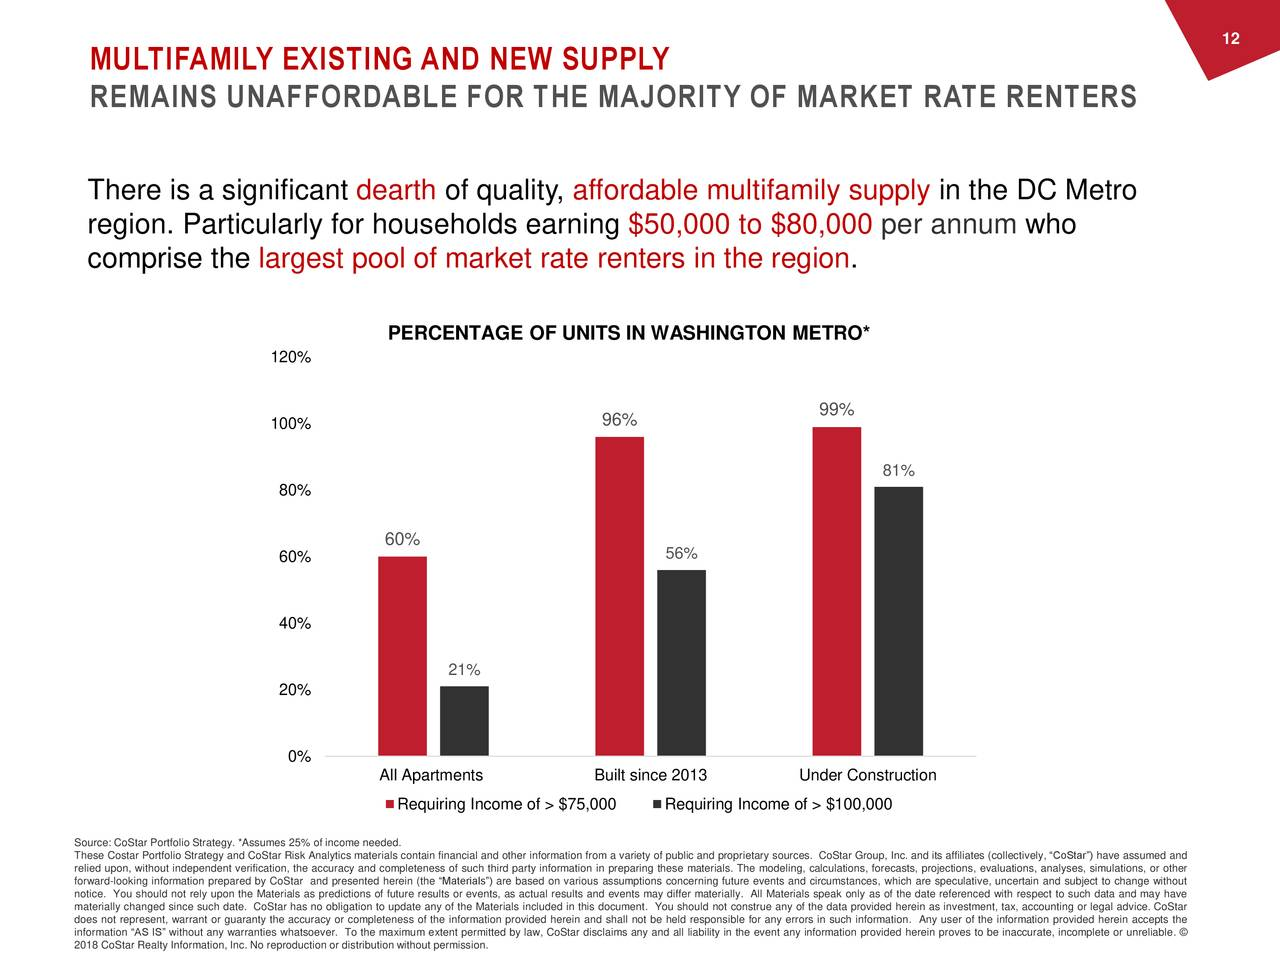 "MULTIFAMILY EXISTING AND NEW SUPPLY REMAINS UNAFFORDABLE FOR THE MAJORITY OF MARKET RATE RENTERS There is a significant dearth of quality, affordable multifamily supply in the DC Metro region. Particularly for households earning $50,000 to $80,000 per annum who comprise the largest pool of market rate renters in the region. PERCENTAGE OF UNITS IN WASHINGTON METRO* 0% 99% 100% 96% 81% 80% 60% 60% 56% 40% 21% 20% 0% All Apartments Built since 2013 Under Construction Requiring Income of > $75,000 Requiring Income of > $100,000 Source: CoStar Portfolio Strategy. *Assumes 25% of income needed. These Costar Portfolio Strategy and CoStar Risk Analytics materials contain financial and other information from a variety of public and proprietary sources. CoStar Group, Inc. and its affiliates (collectively, ""CoStar"") have assumed and forward-looking information prepared by CoStar and presented herein (the ""Materials"") are based on various assumptions concerning future events and circumstances, which are speculative, uncertain and subject to change without, or other notice. You should not rely upon the Materials as predictions of future results or events, as actual results and events may differ materially. All Materials speak only as of the date referenced with respect to such data and may have materially changed since such date. CoStar has no obligation to update any of the Materials included in this document. You should not construe any of the data provided herein as investment, tax, accounting or legal advice. CoStar does not represent, warrant or guaranty the accuracy or completeness of the information provided herein and shall not be held responsible for any errors in such information. Any user of the information provided herein accepts the 2018 CoStar Realty Information, Inc. No reproduction or distribution without permission.y law, CoStar disclaims any and all liability in the event any information provided herein proves to be inaccurate, incomplete or unreliable. ©"